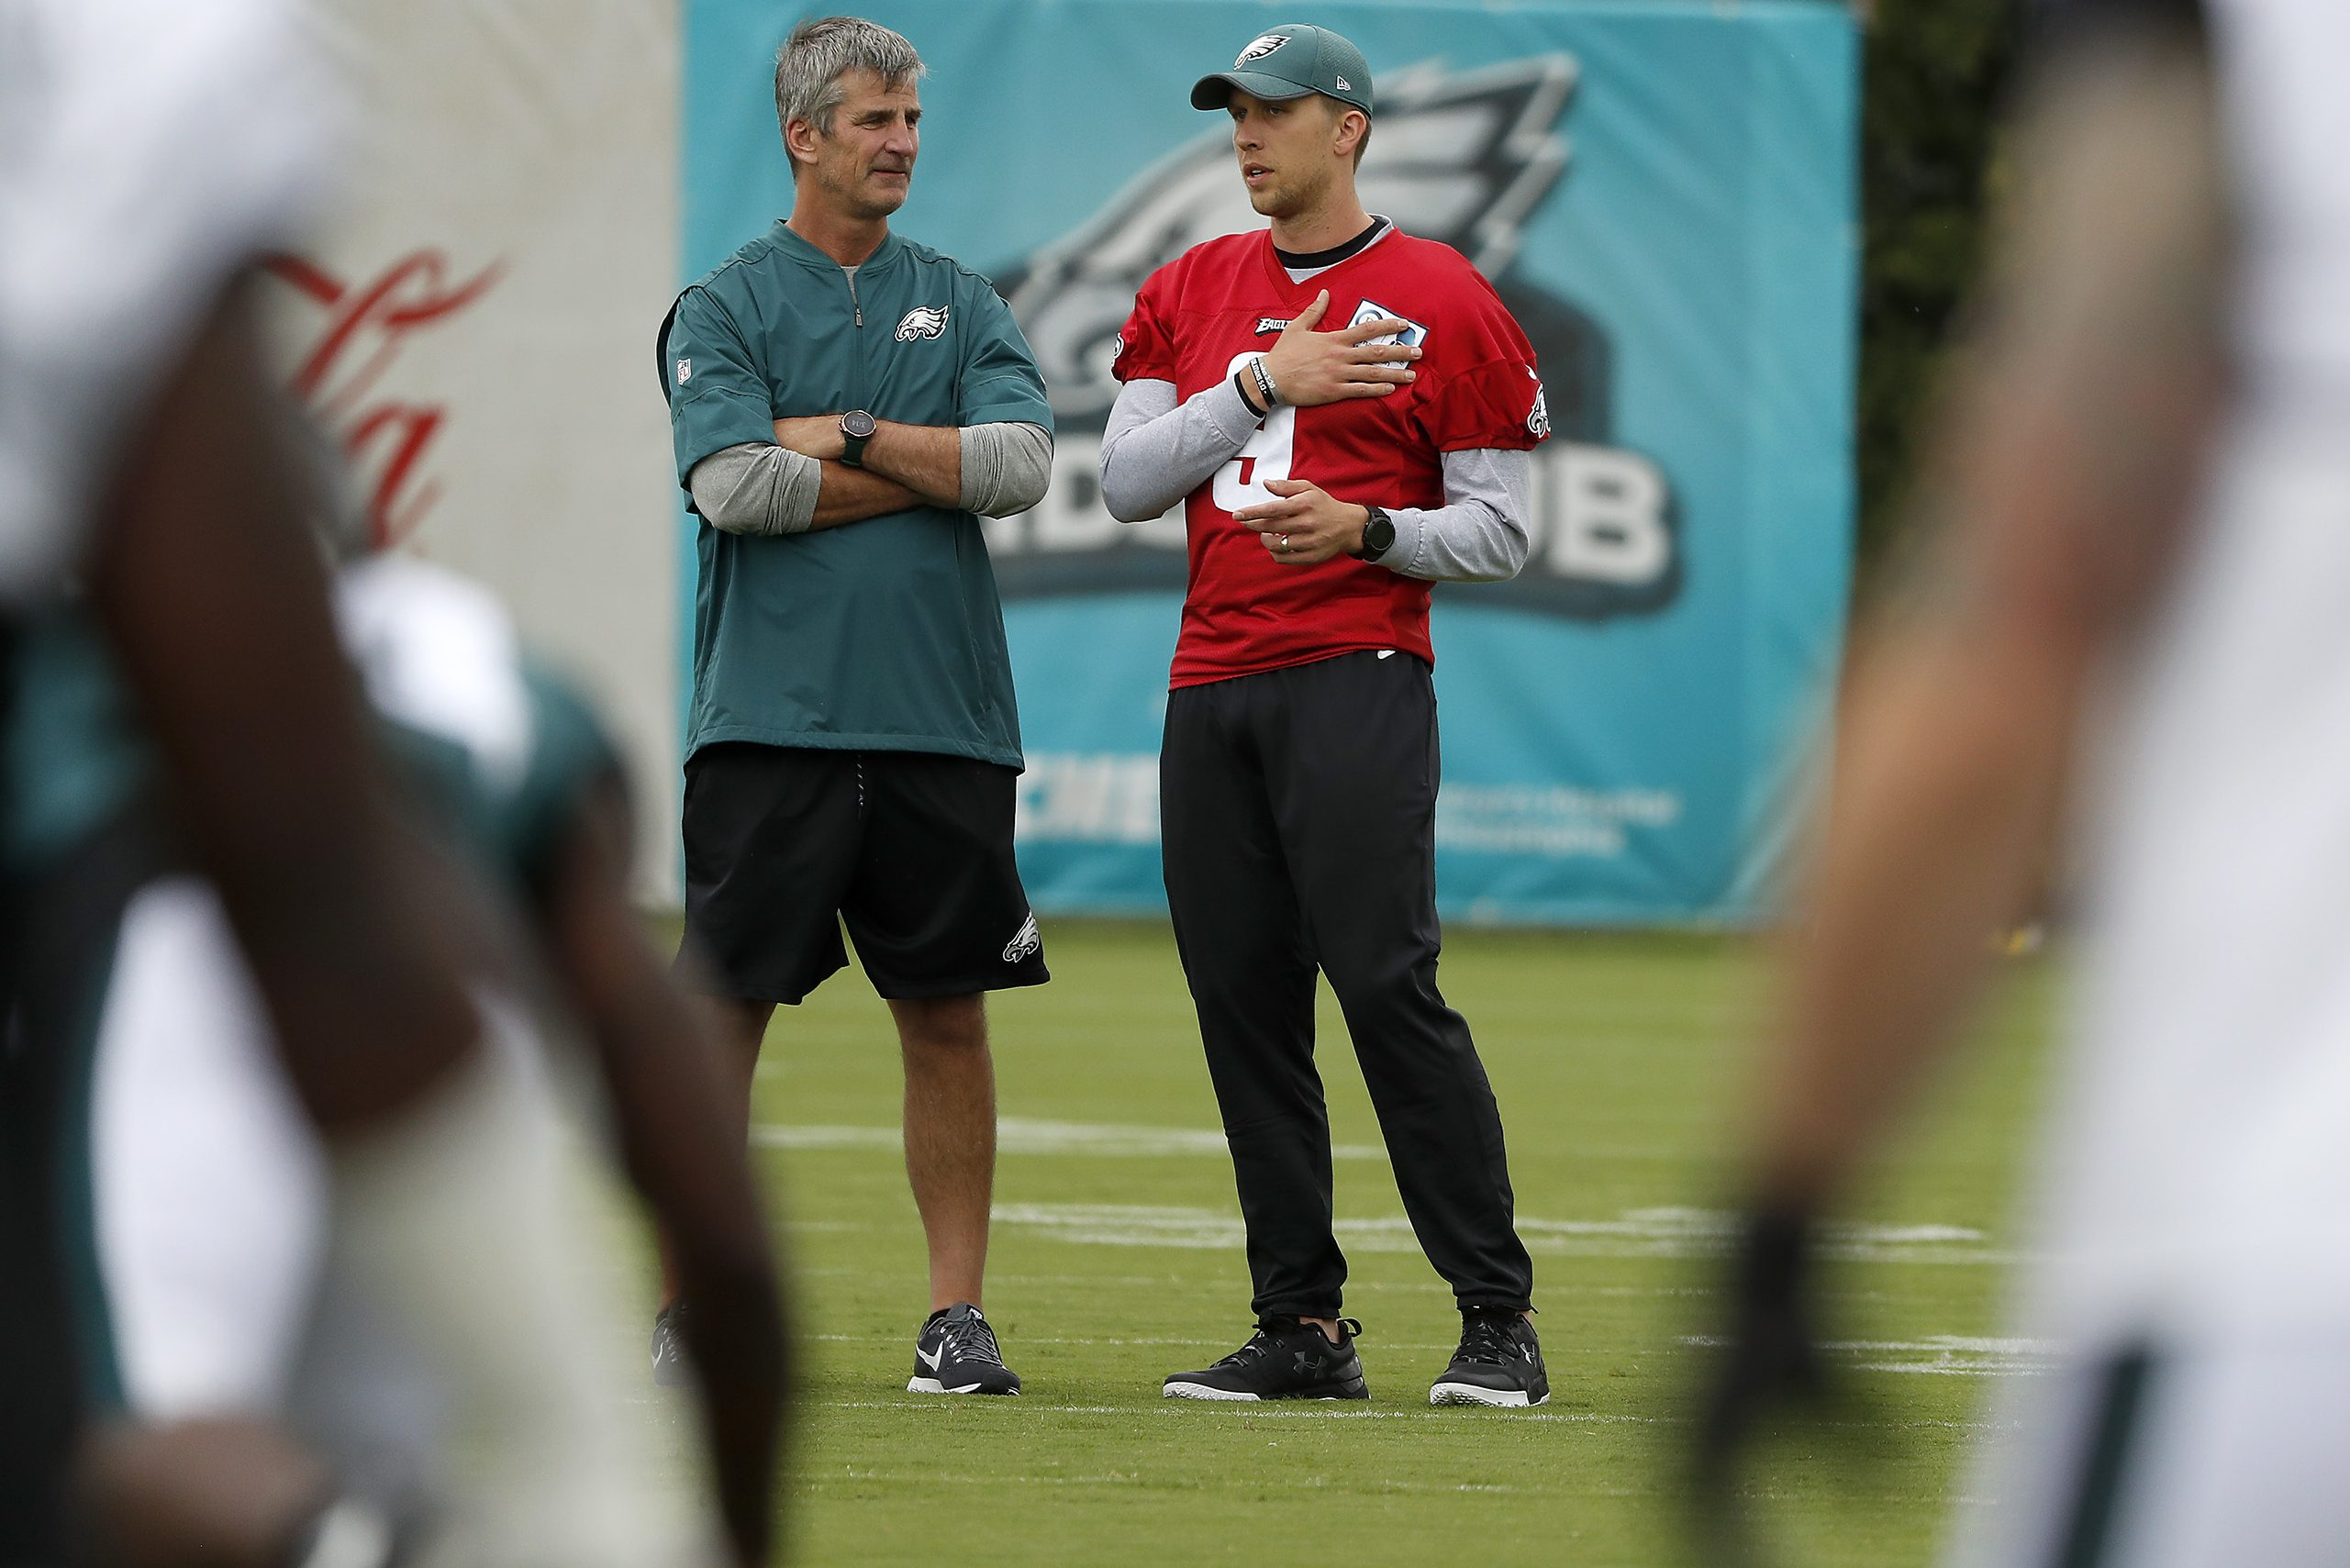 Eagles offensive coordinator Frank Reich talks with Nick Foles during Saturday´s workout. Foles sat out again on Sunday.